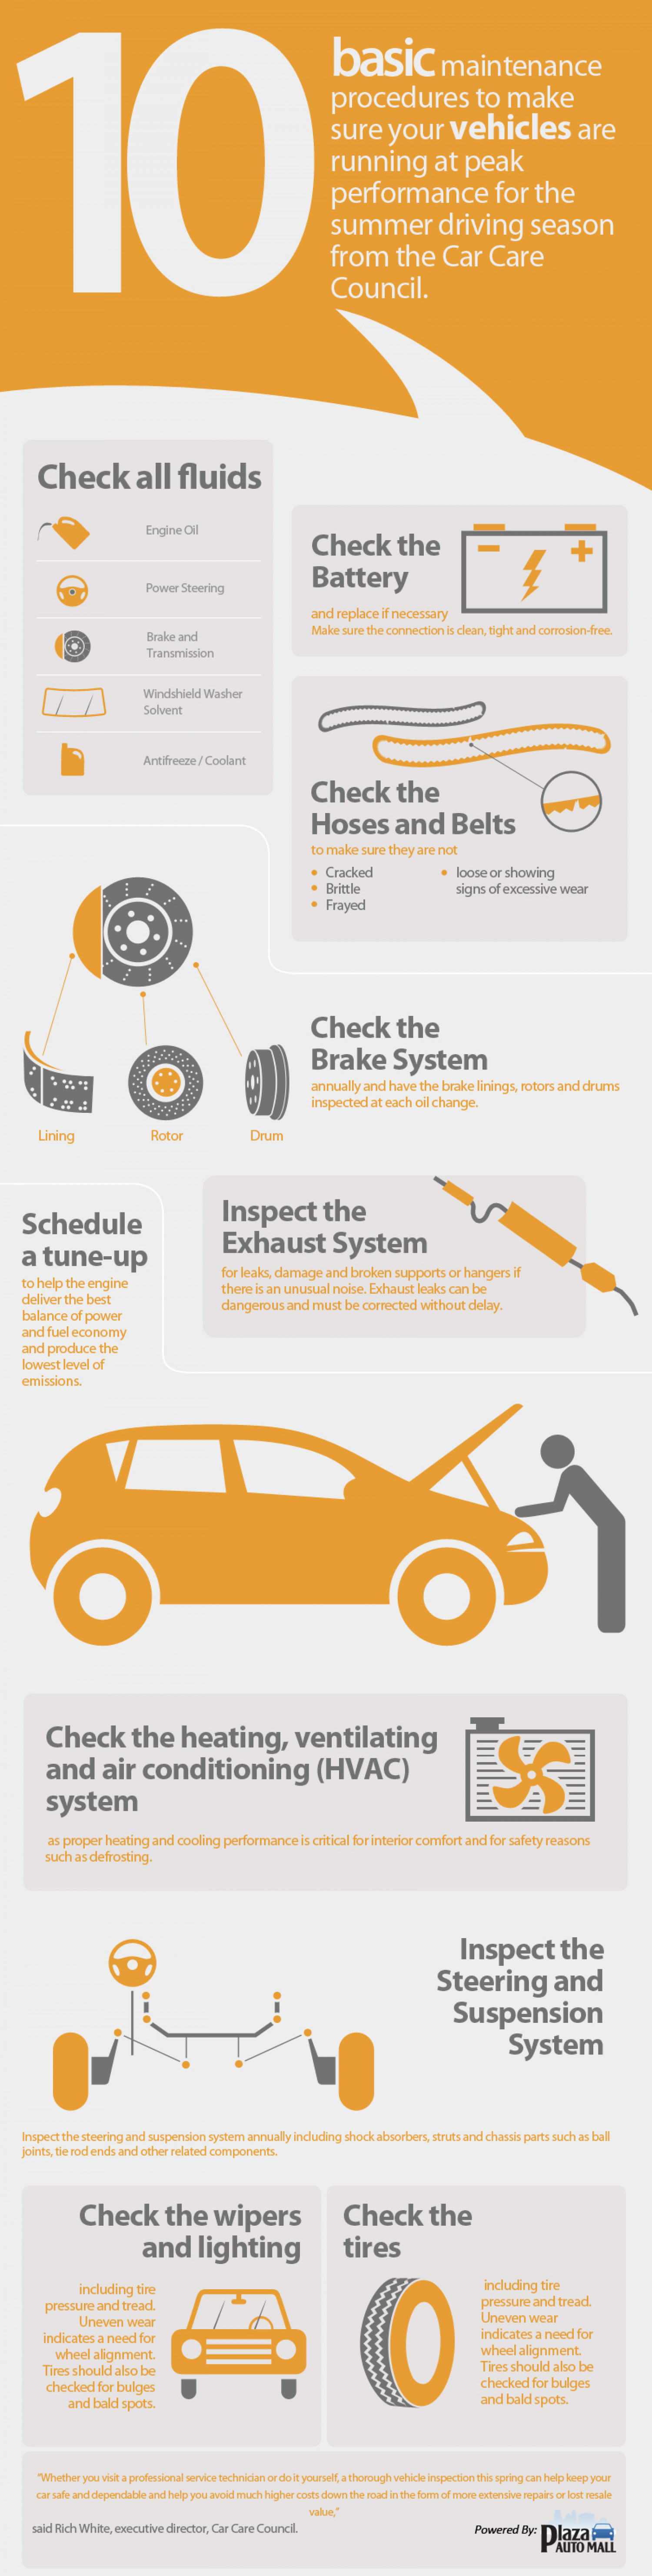 Ten Tips to Keep Your Vehicle at Peak Performance Infographic